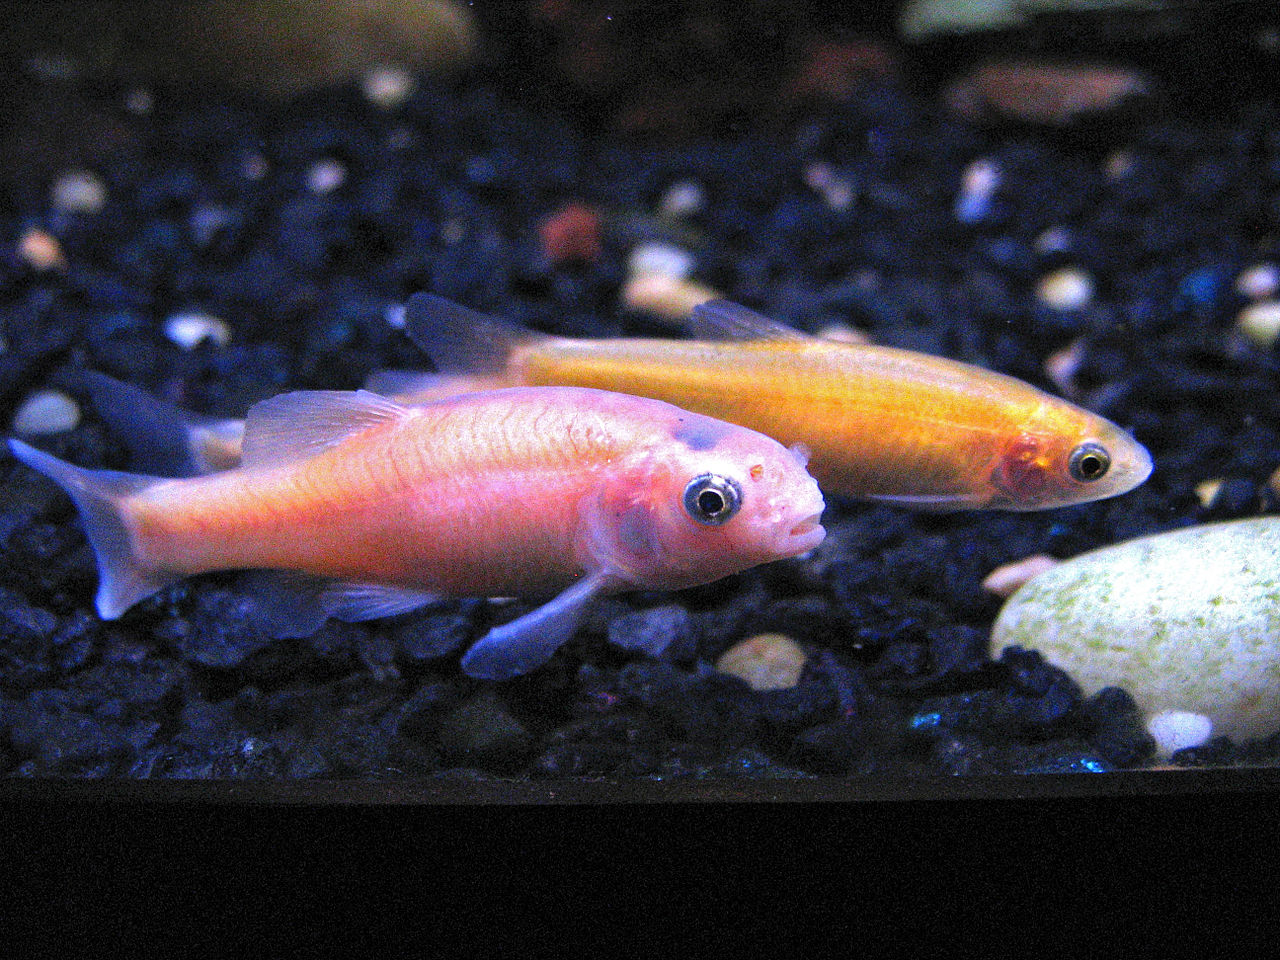 Fish for coldwater aquarium - Rosy Red Minnows